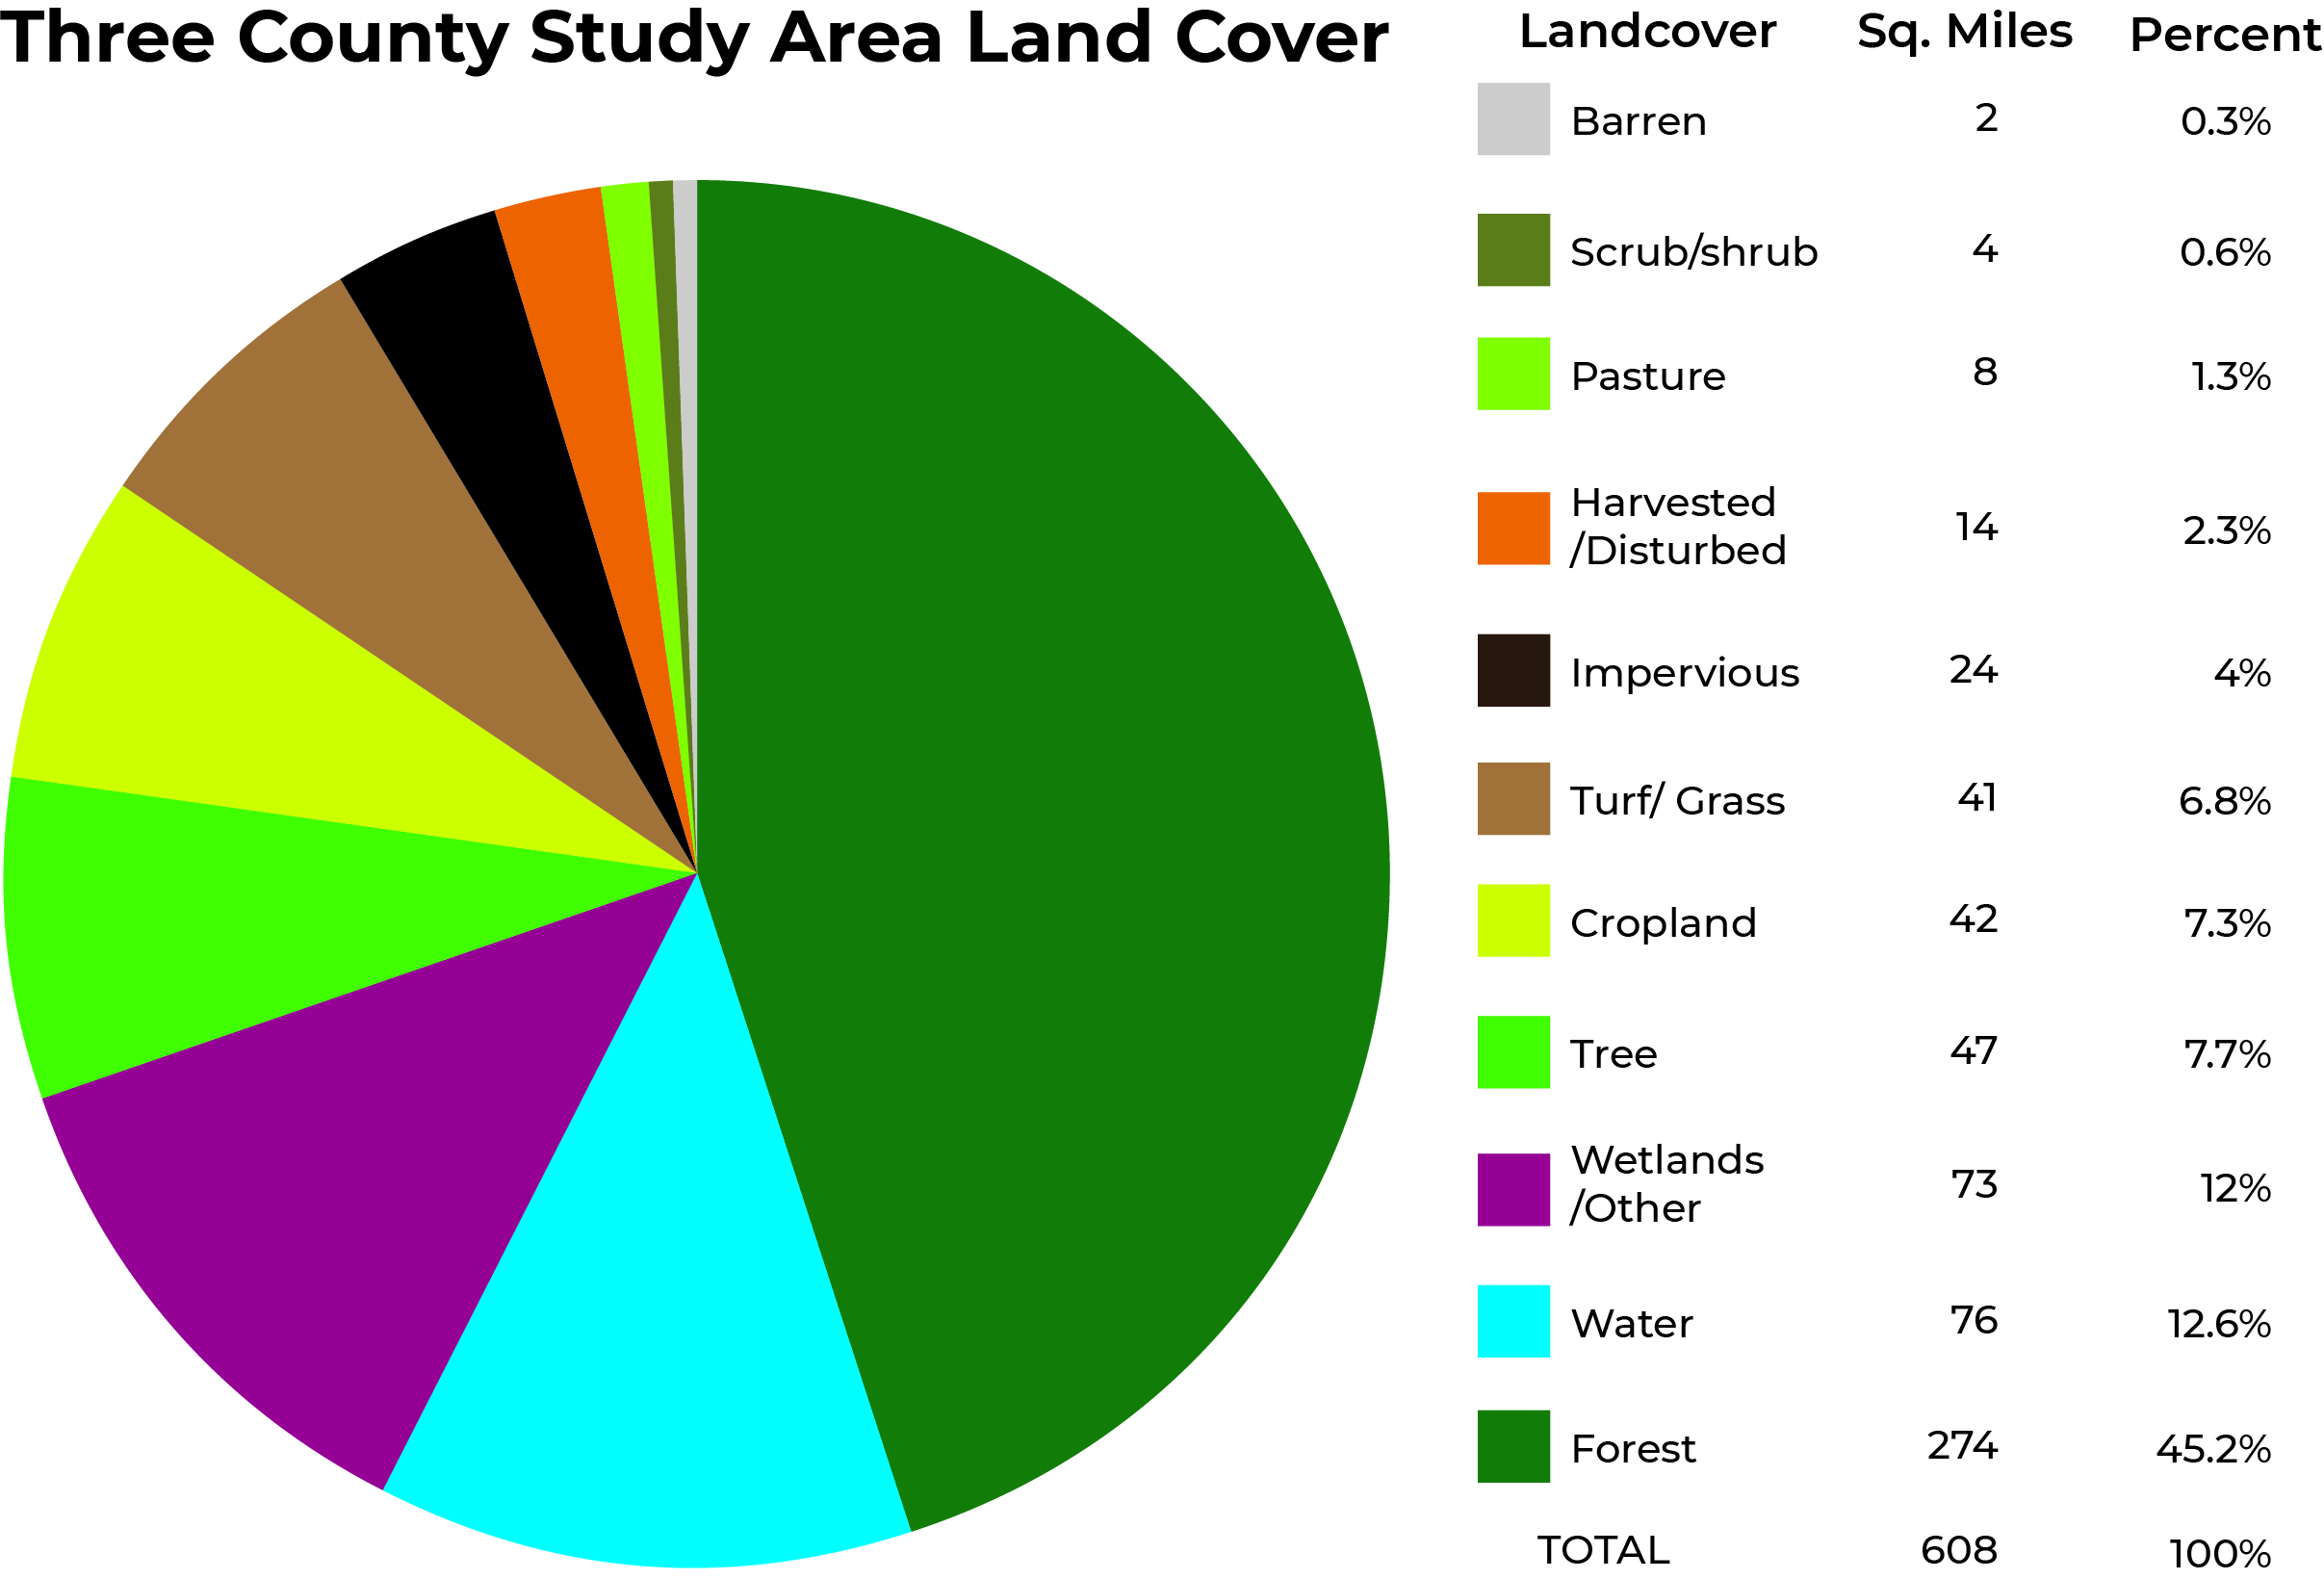 Data Source: 2015 VGIN 1 meter resolution land cover